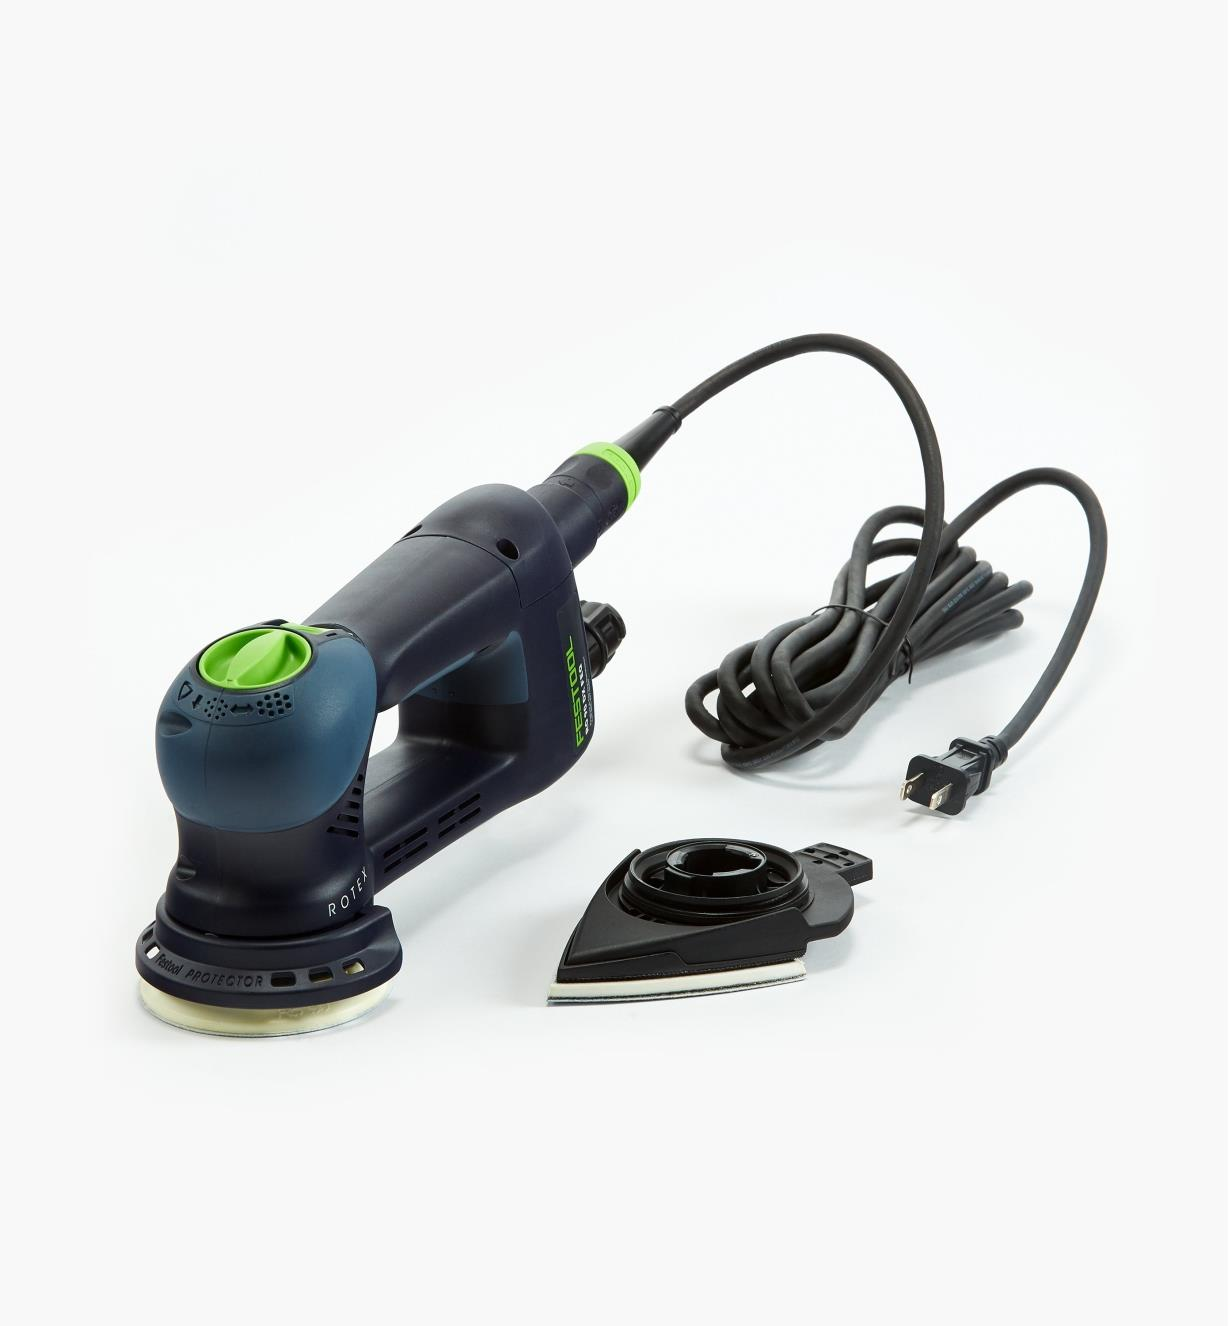 Rotex RO 90 DX Multi-Mode Sander